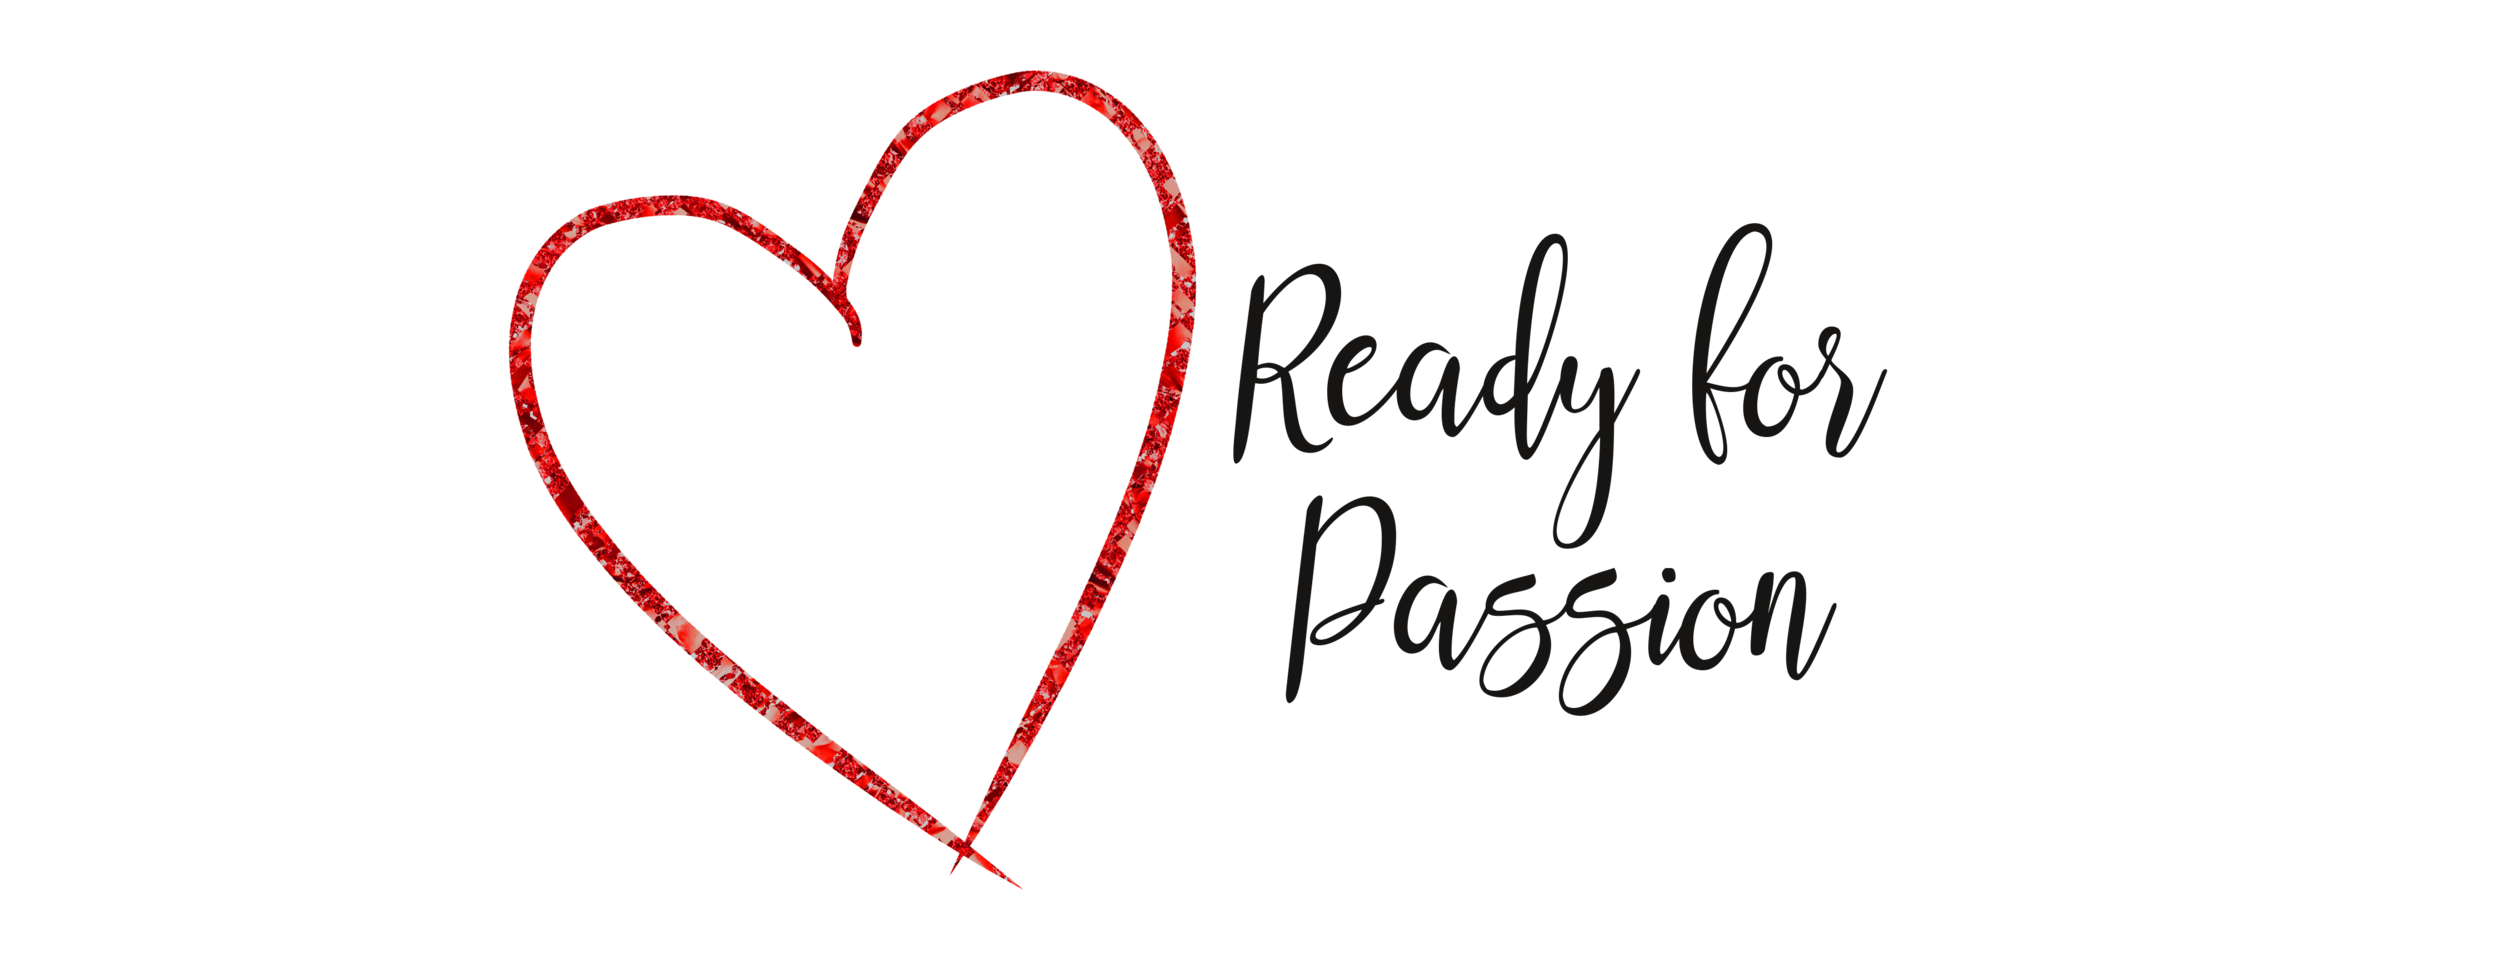 ready for passion Newsletter header.png